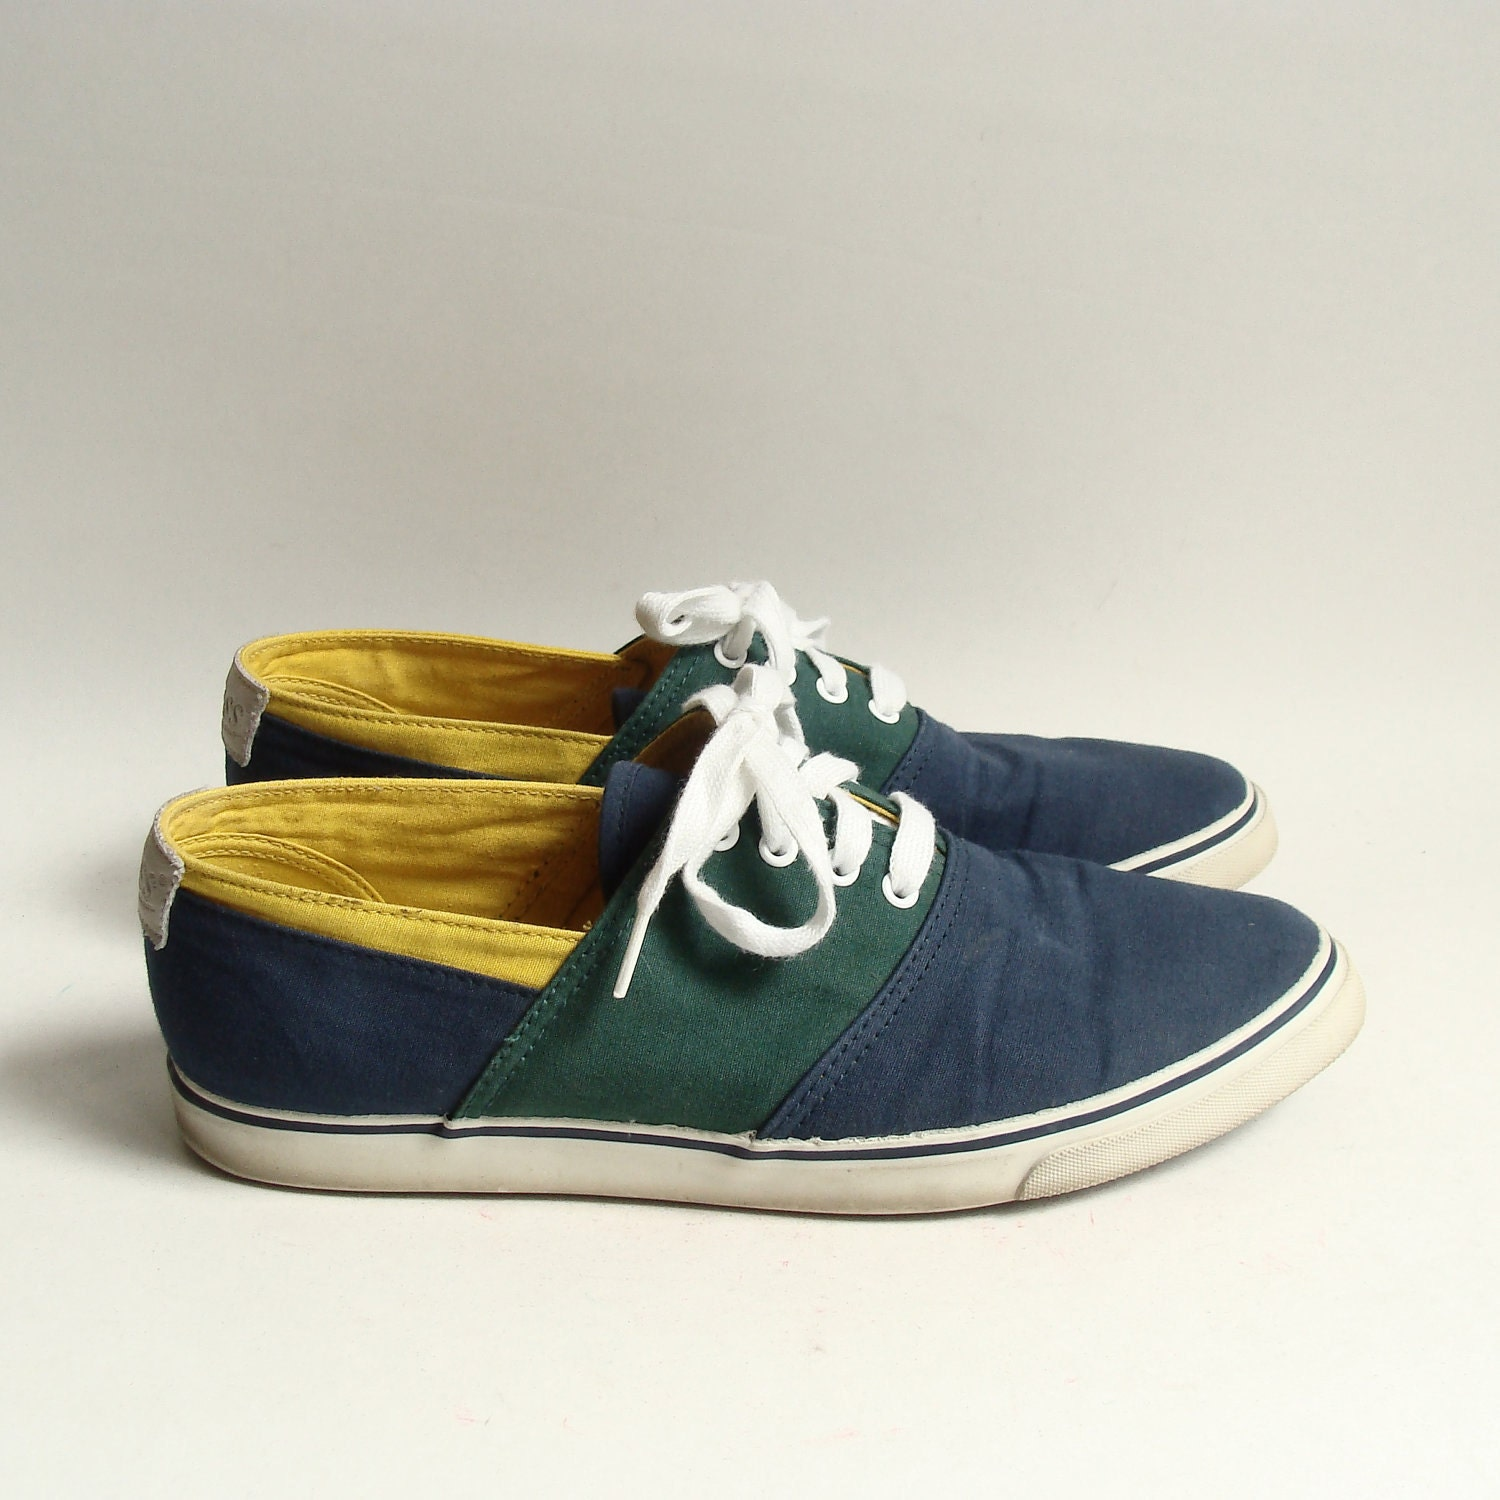 Shoes 7.5 / Canvas Boat Shoes / 90s 1990s Bass Flats / Lace Up